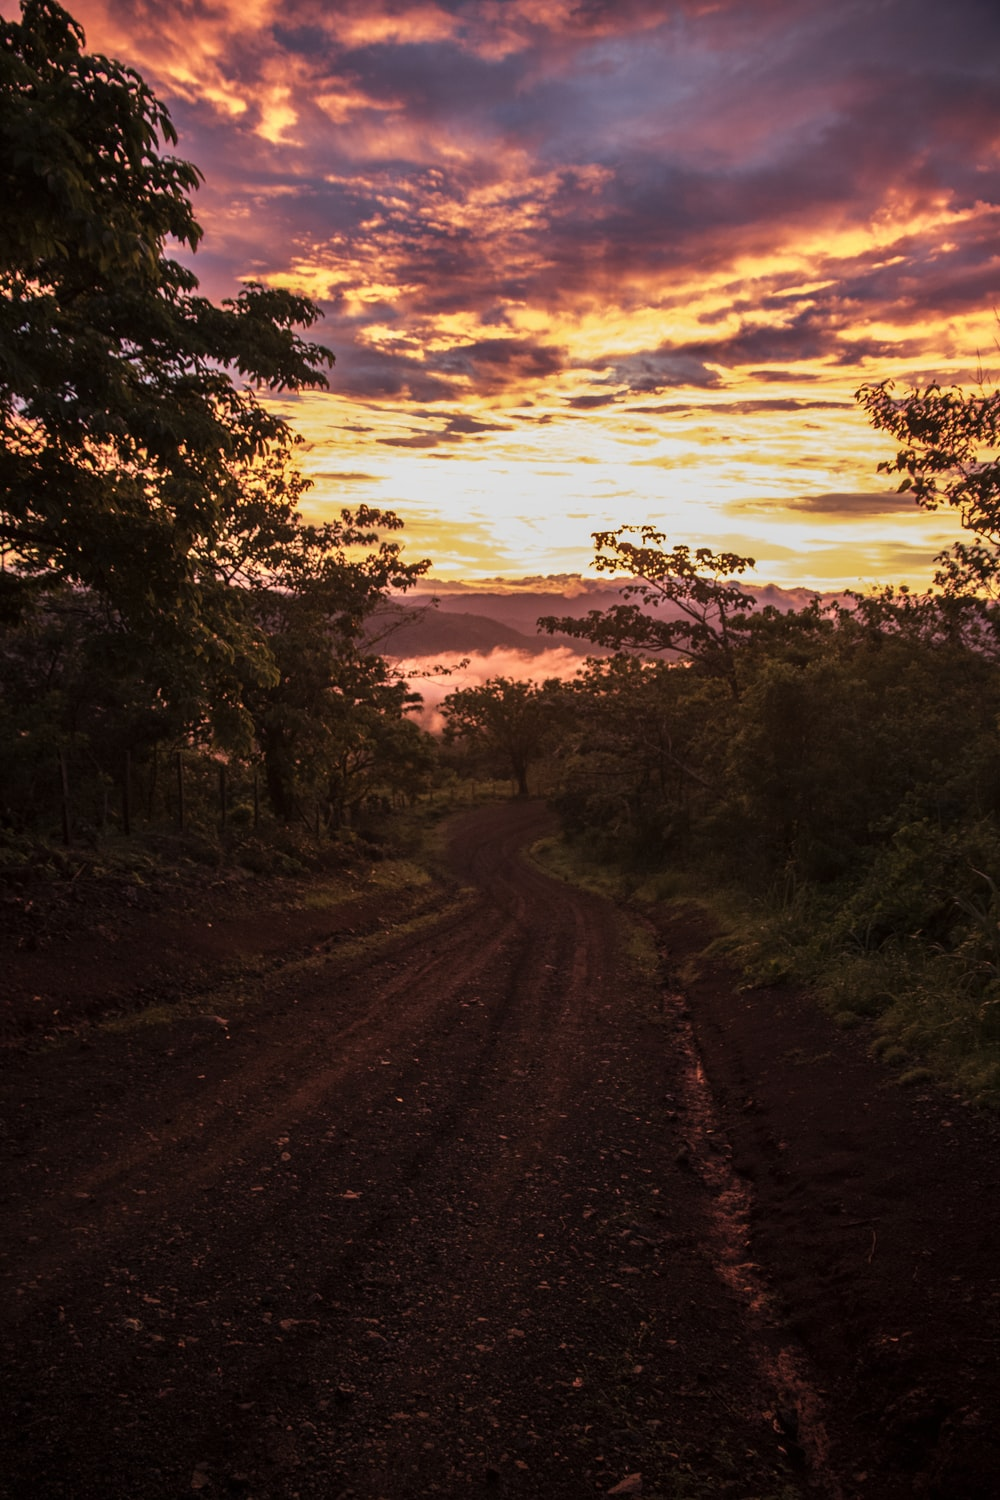 brown dirt road between trees during sunset